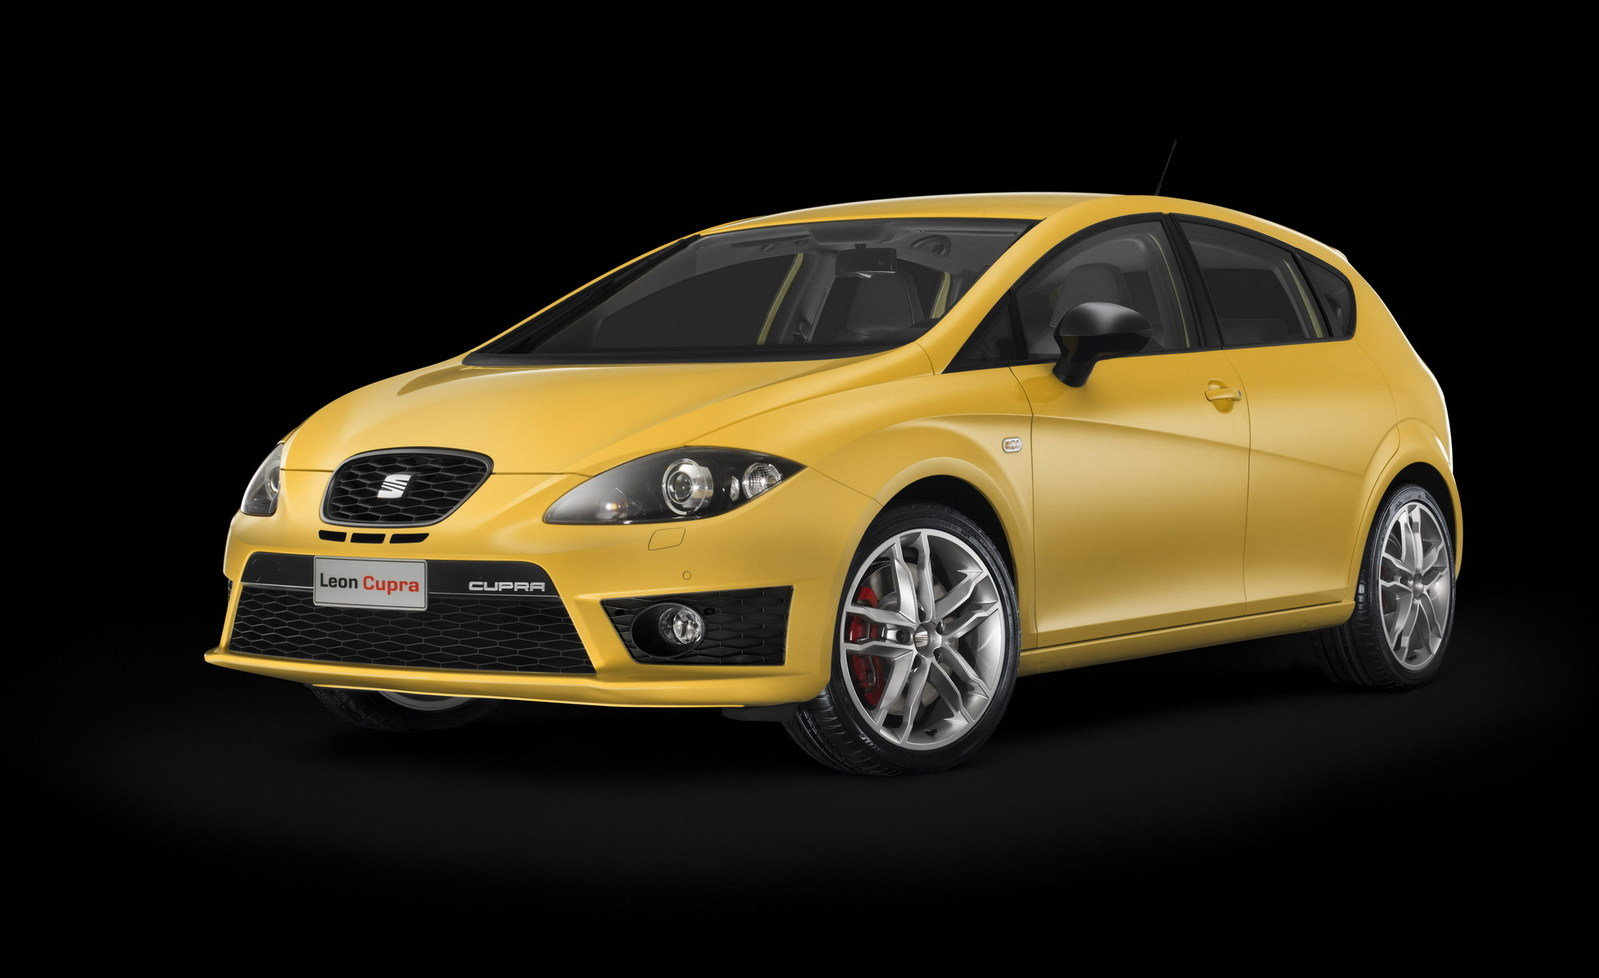 2009 seat leon cupra review top speed. Black Bedroom Furniture Sets. Home Design Ideas